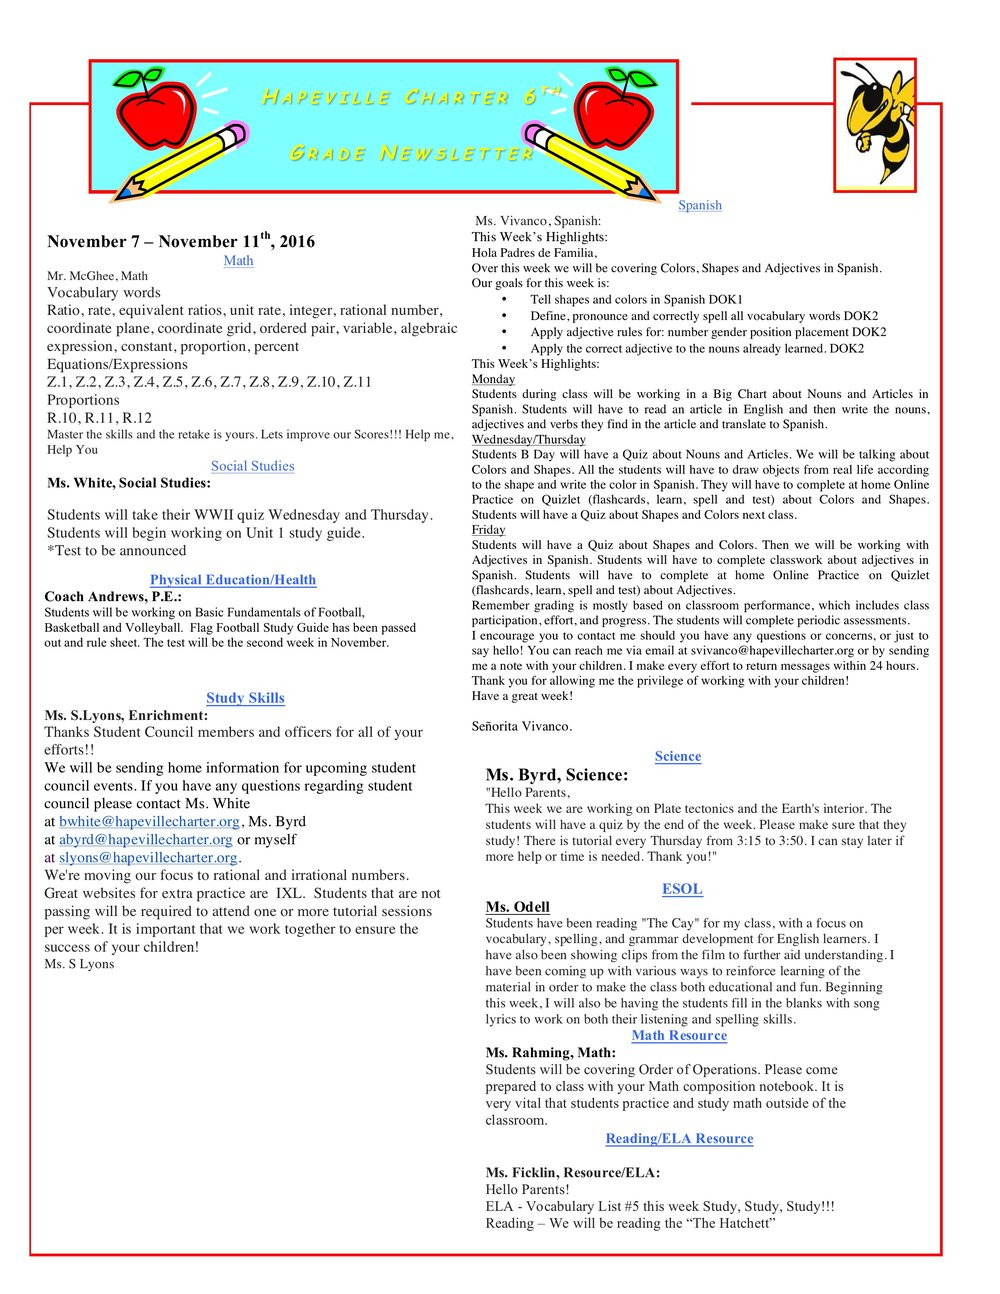 Newsletter Image6th Grade Newsletter 11-7-2016.jpeg